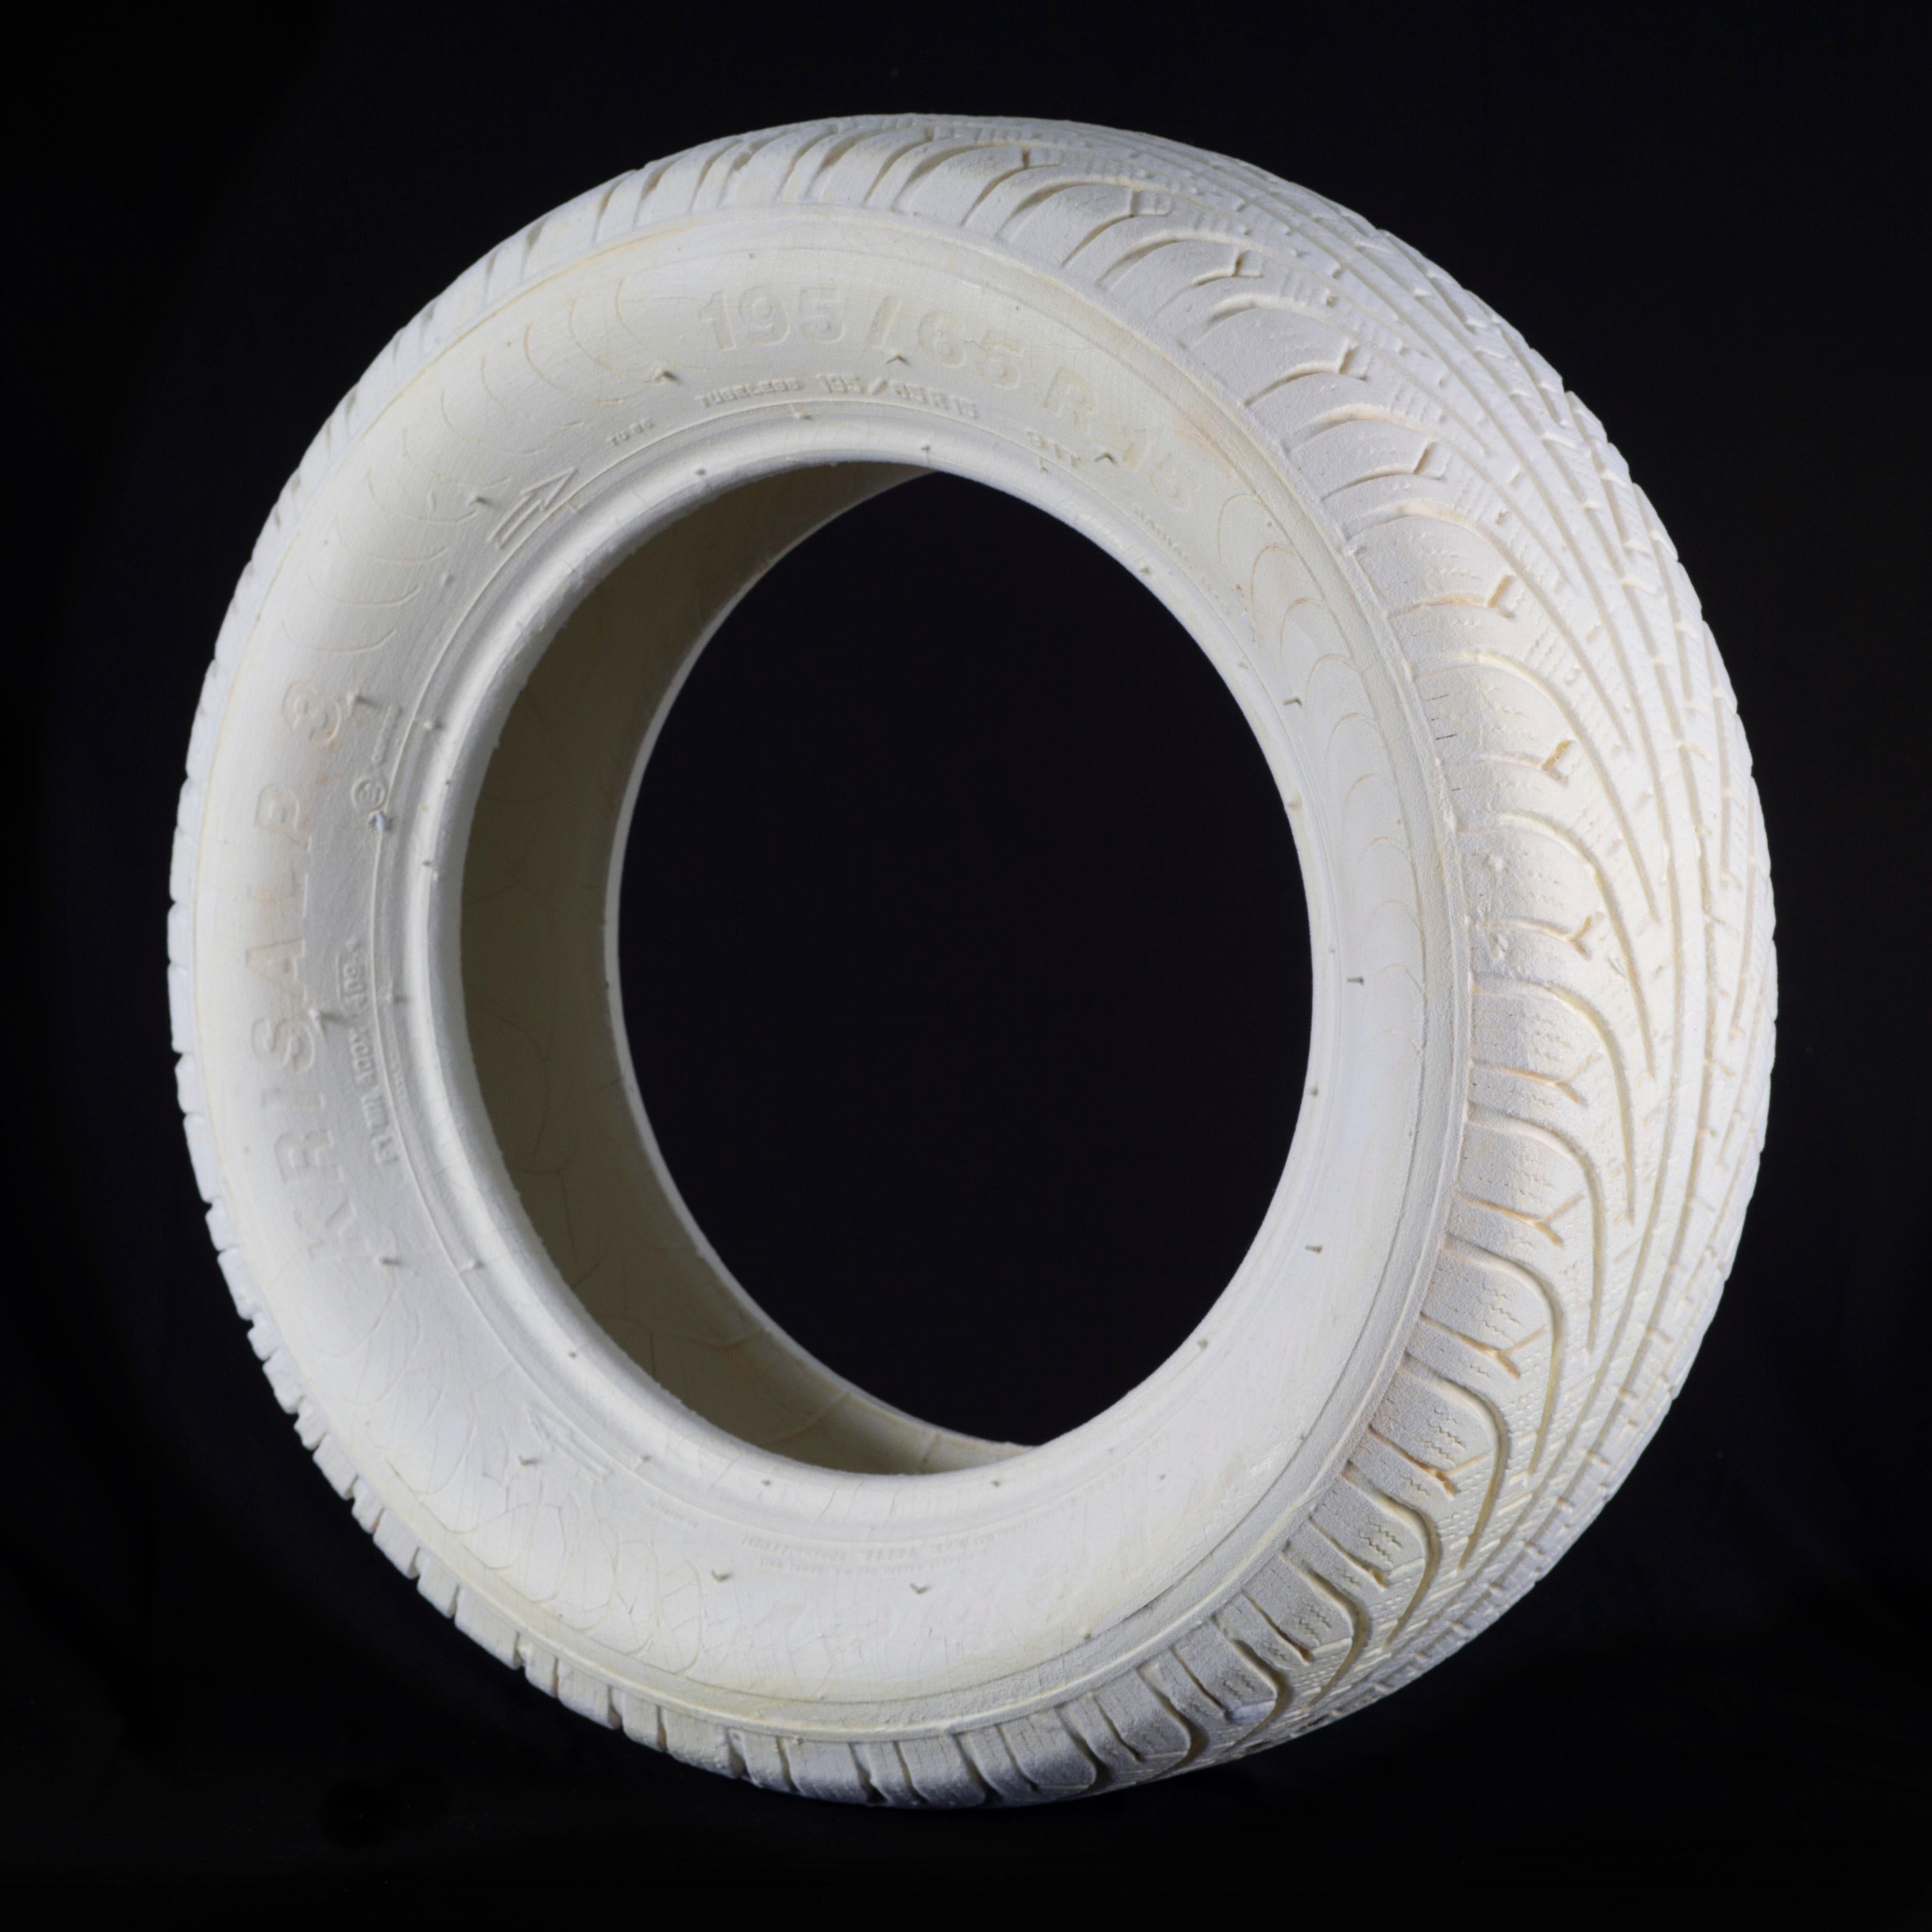 'Spinta Tire' Conceptual Sculpture, Found Object